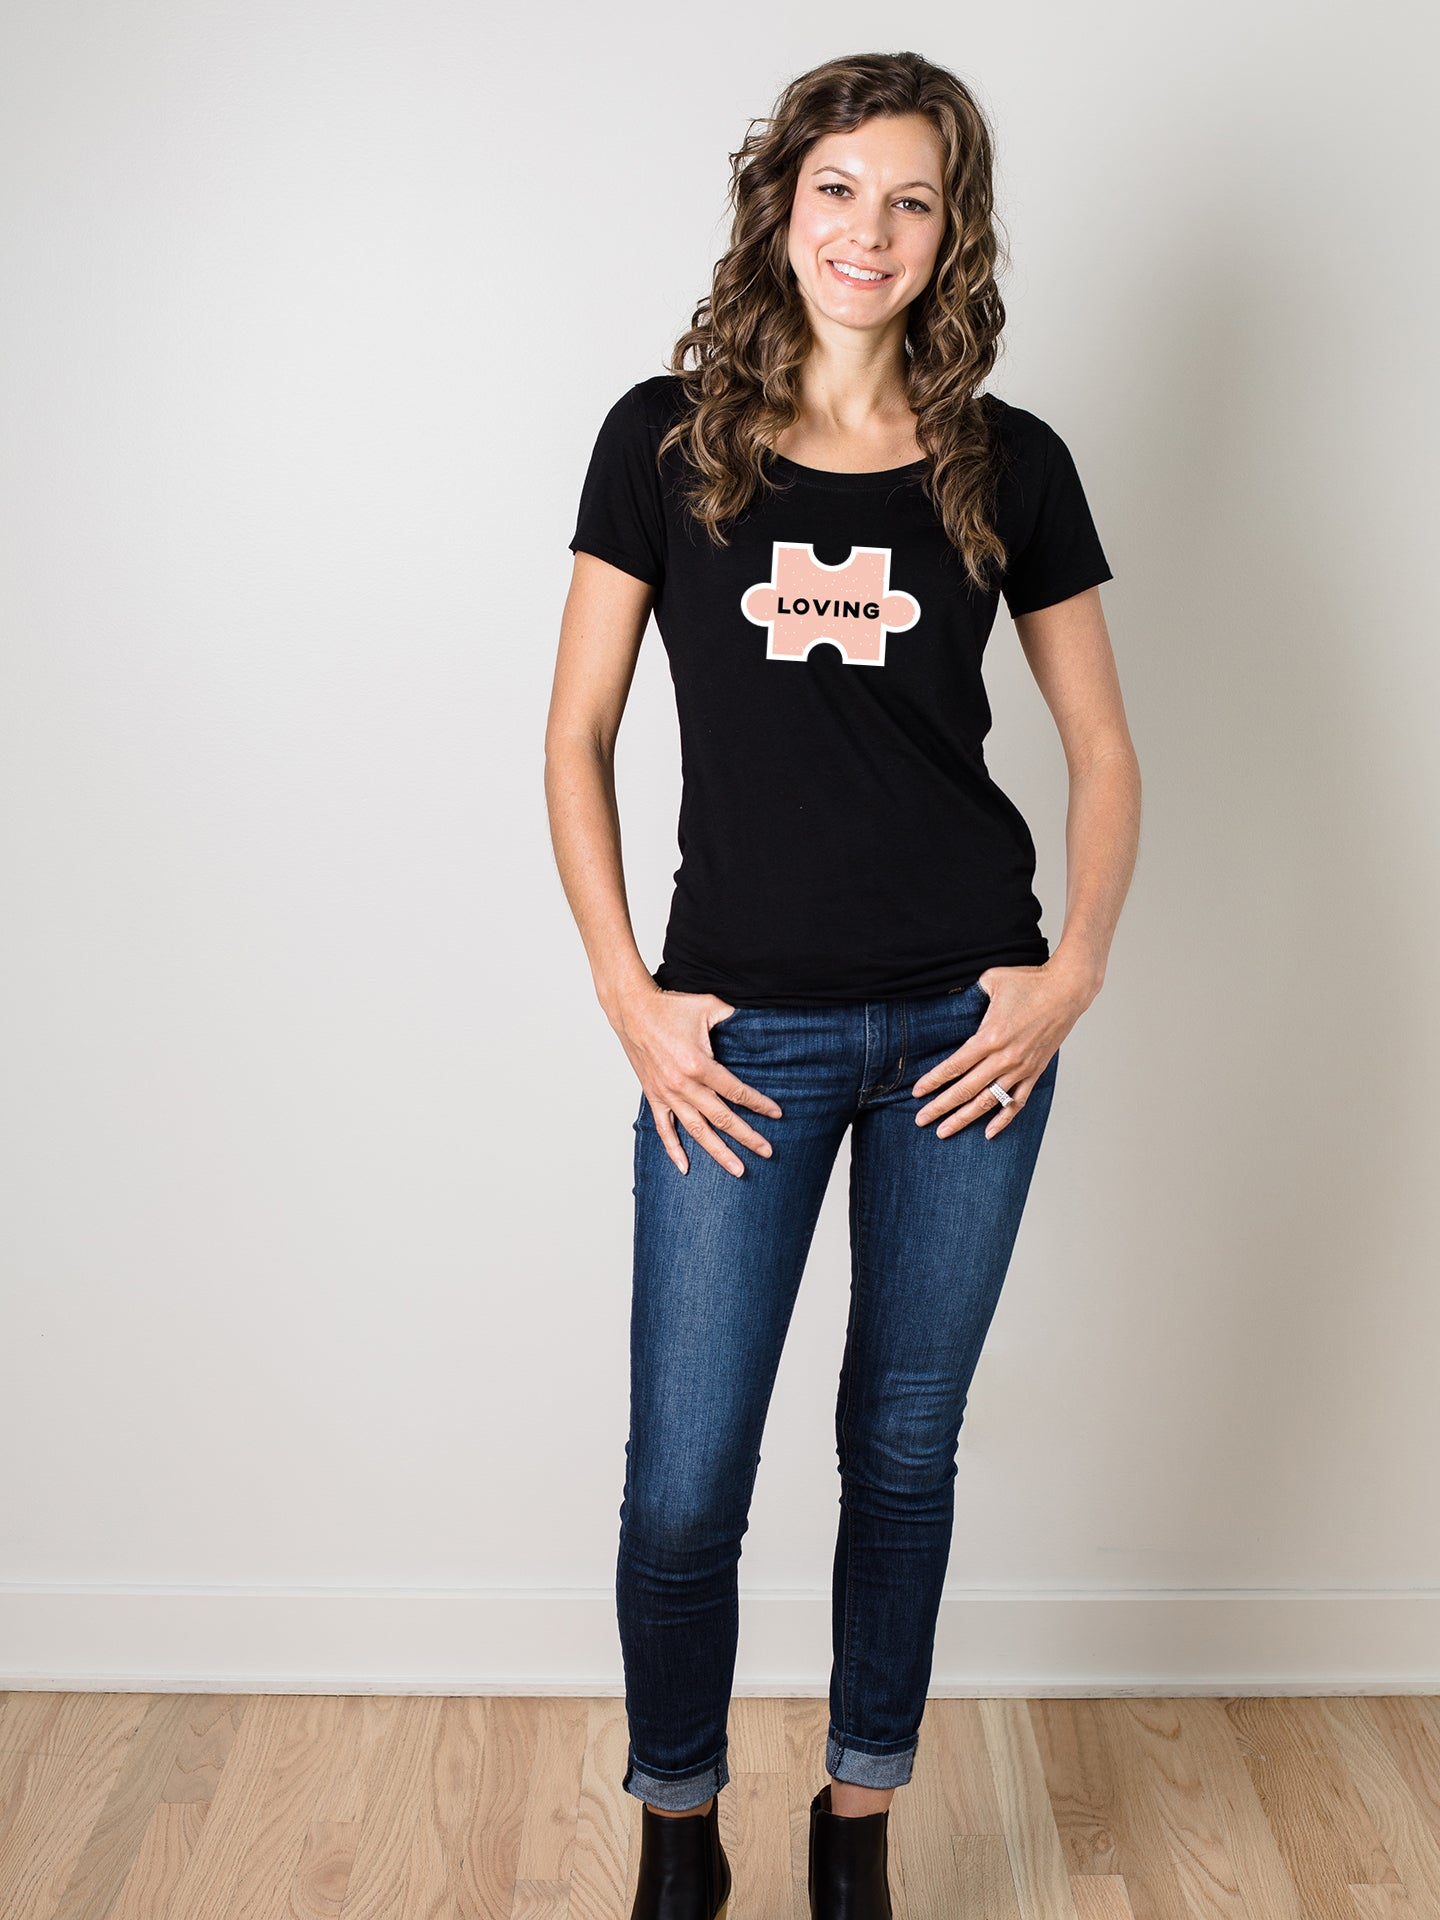 The Power of Words - Women's Tee - Puzzle Pieces - LOVING